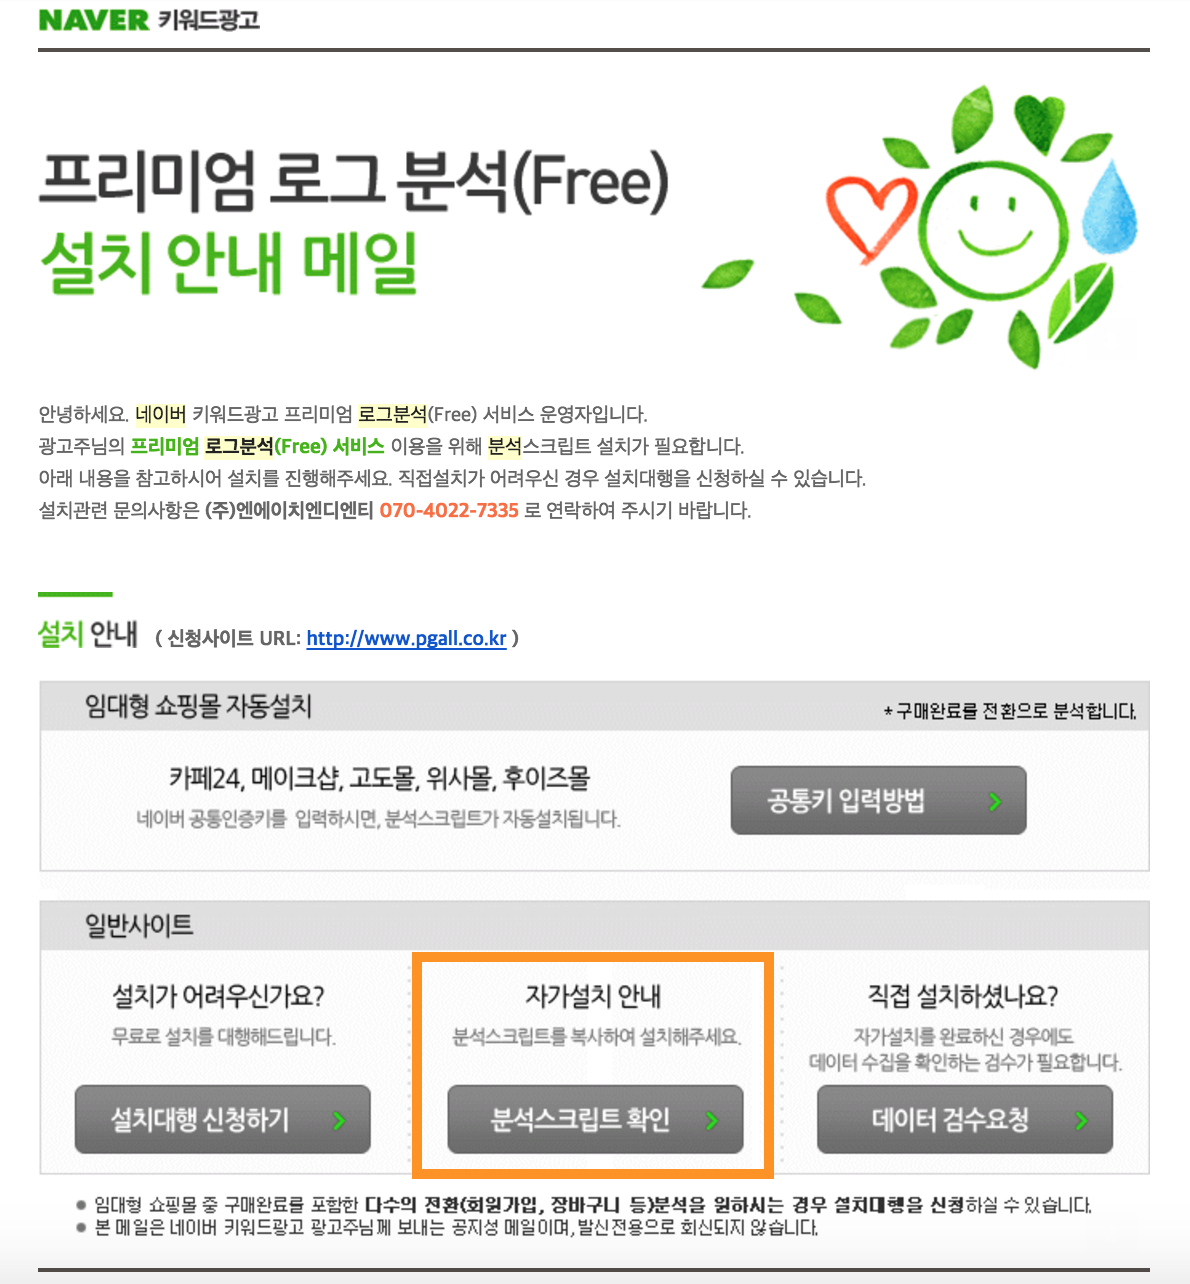 codemshop-wordepress-mysite-naver-4